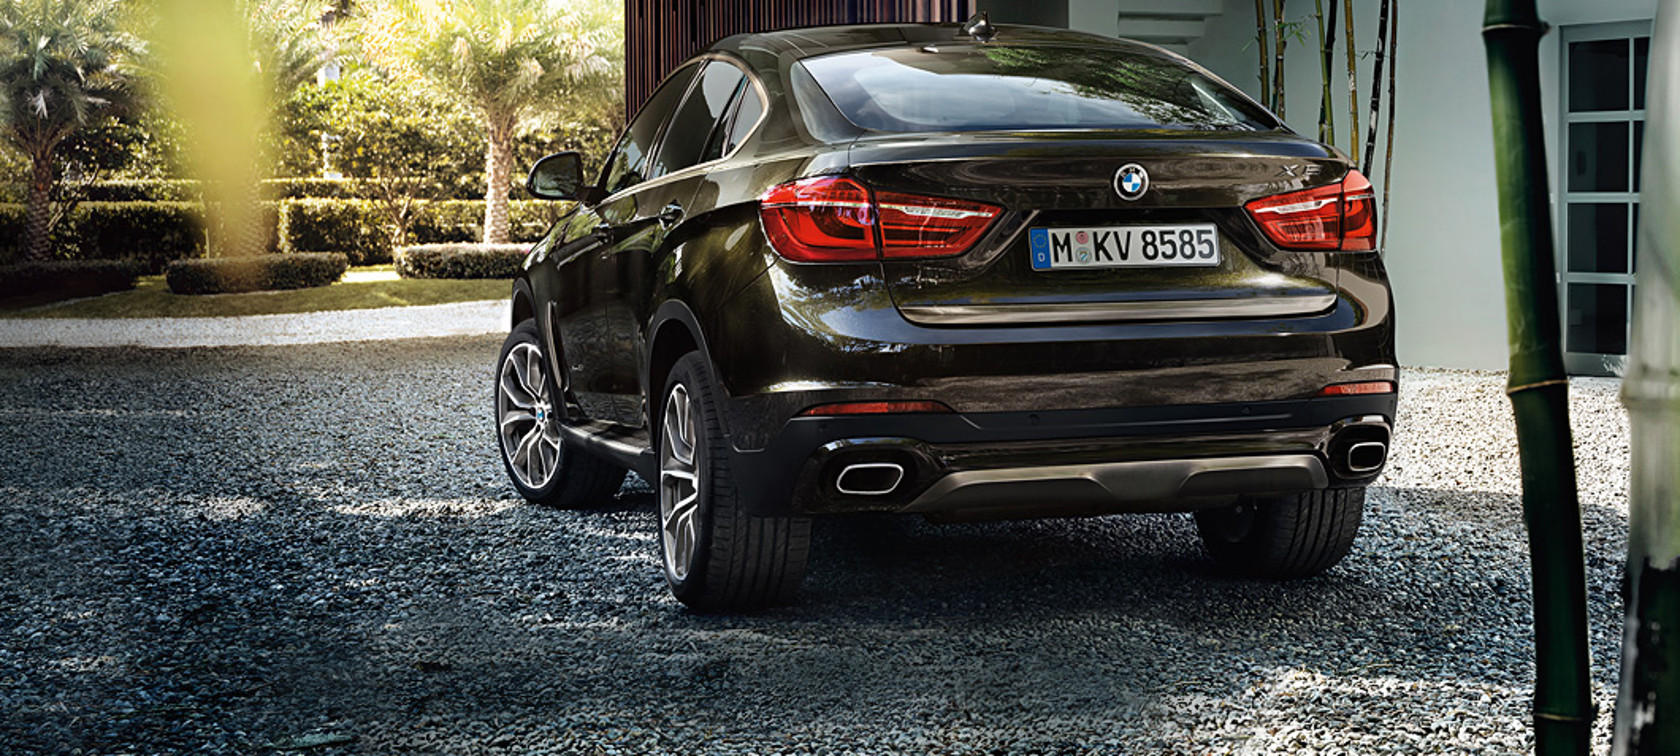 BMW X Series X6: black car rear view inside the garden.